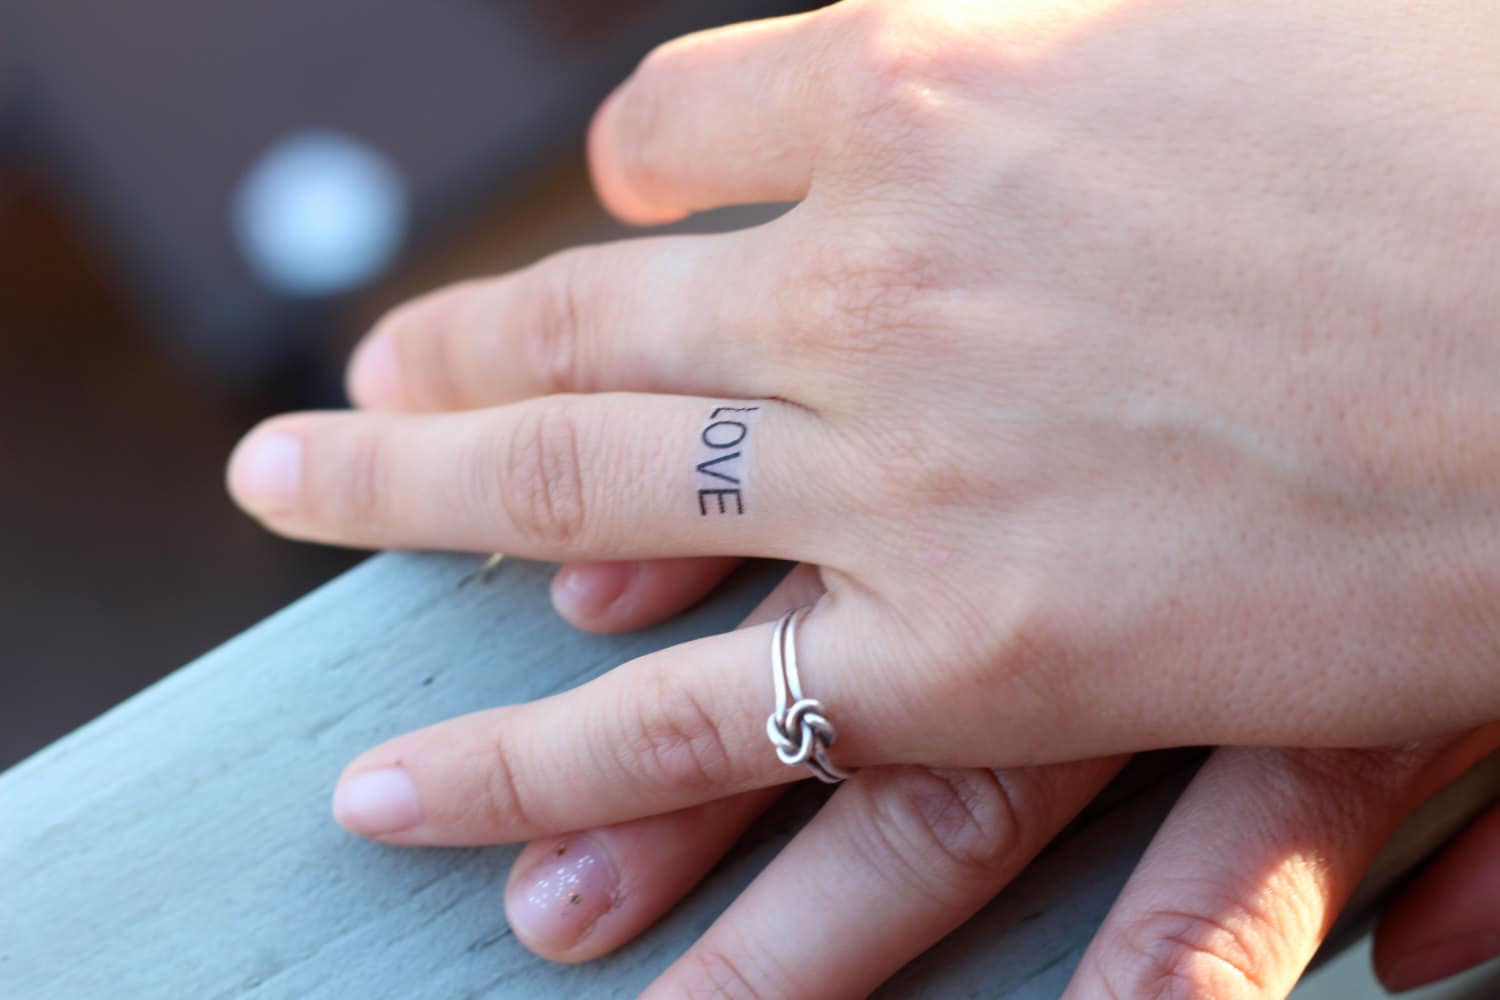 LOVE Ring Tattoo